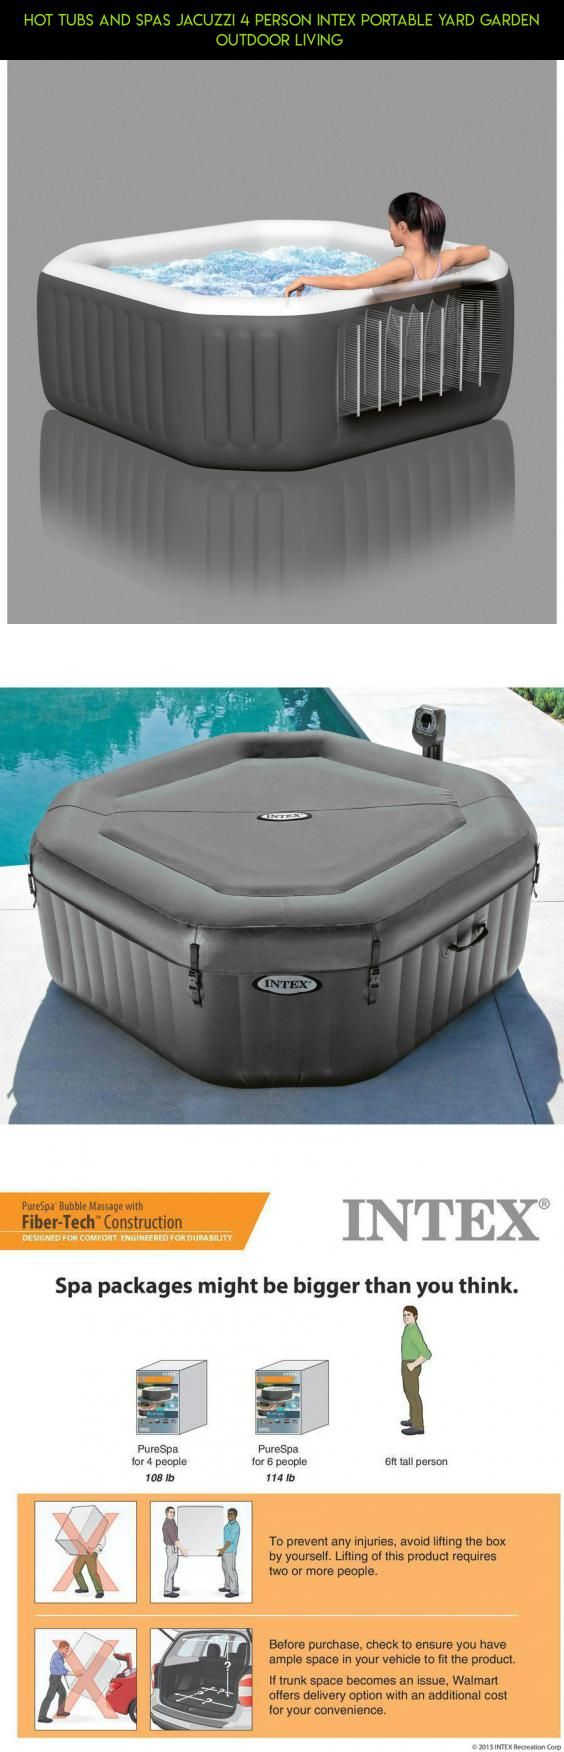 hot tubs and spas jacuzzi person intex portable yard garden outdoor living plans